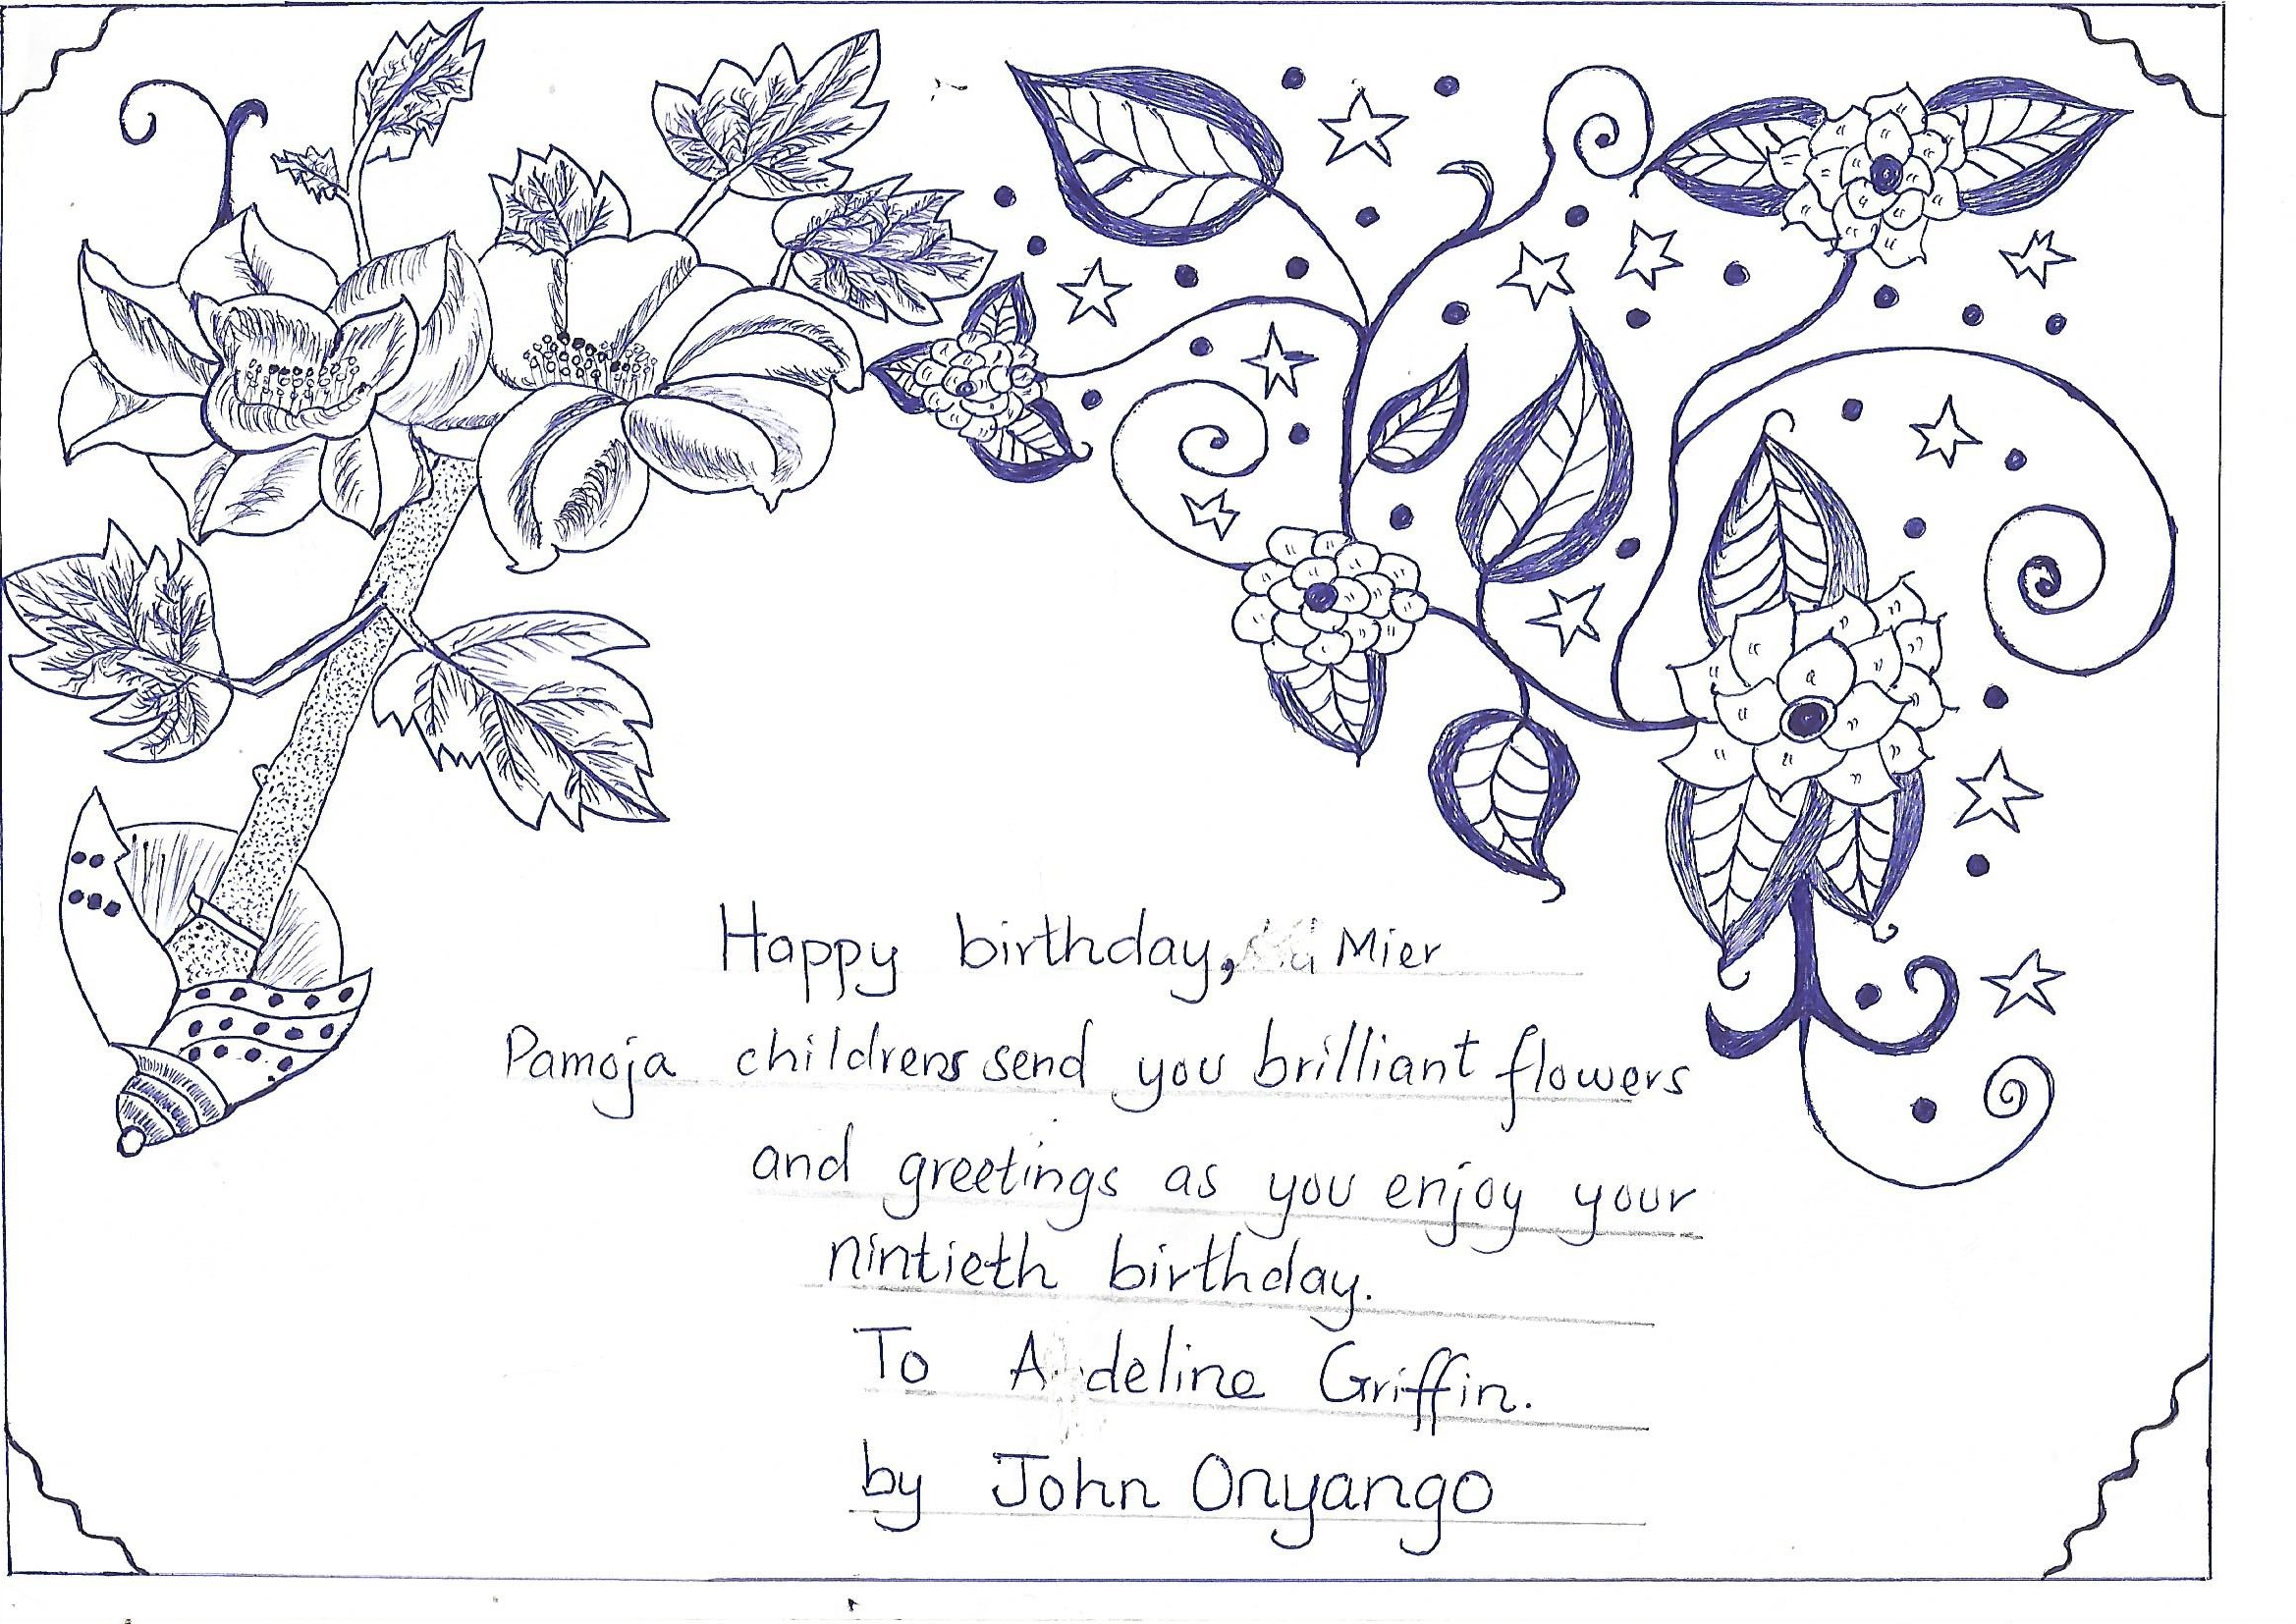 Today Is Adeline Griffins 90th Birthday The Picture Above Was Drawn By One Of Pamojas Sponsored Children In Magina John Onyango Its Amazing